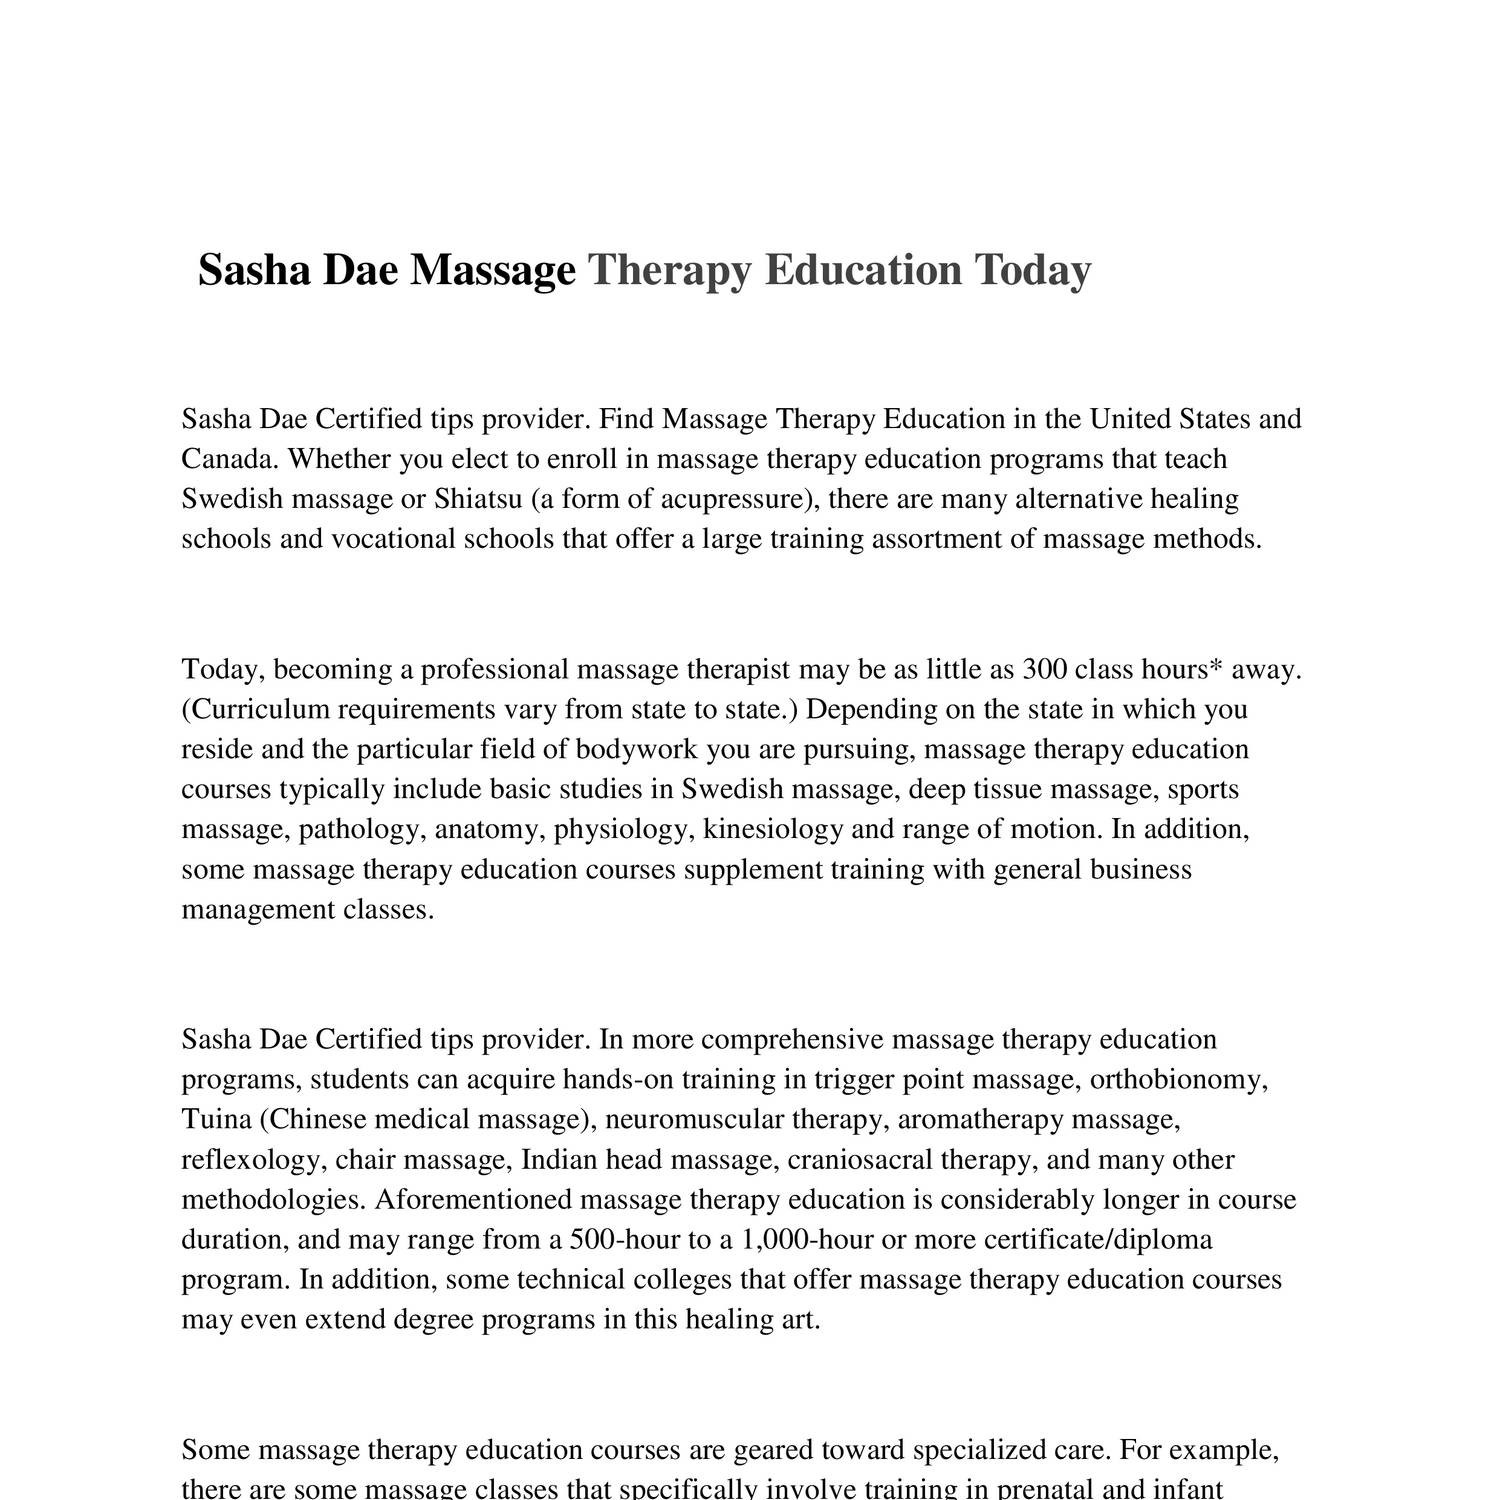 Sasha Dae Massage Therapy Education Todaycx Docdroid